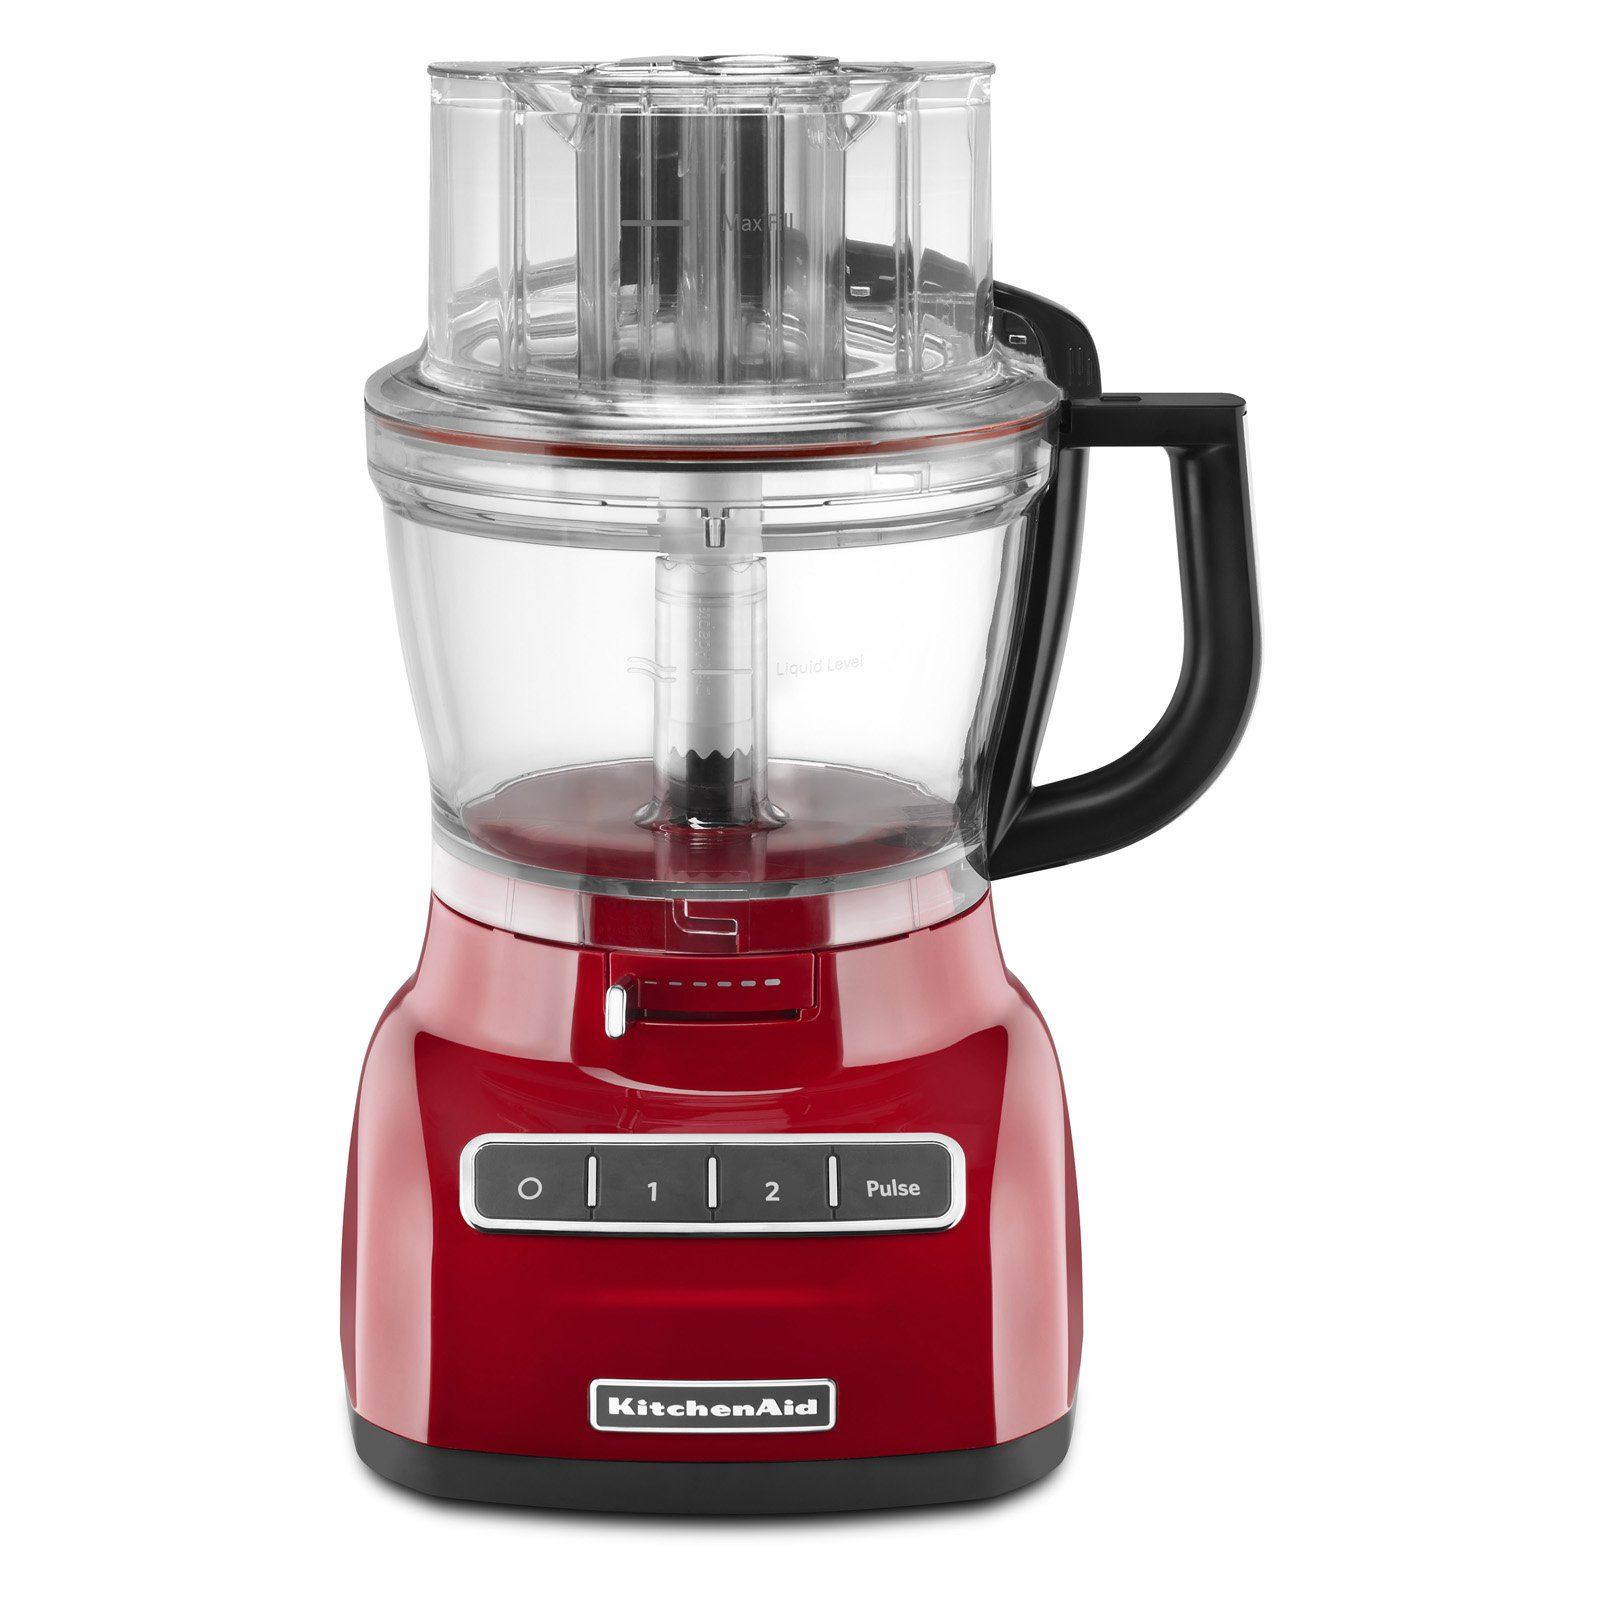 Kitchenaid Kfp1333cu 13 Cup Food Processor With Exactslice System Empire Red Com